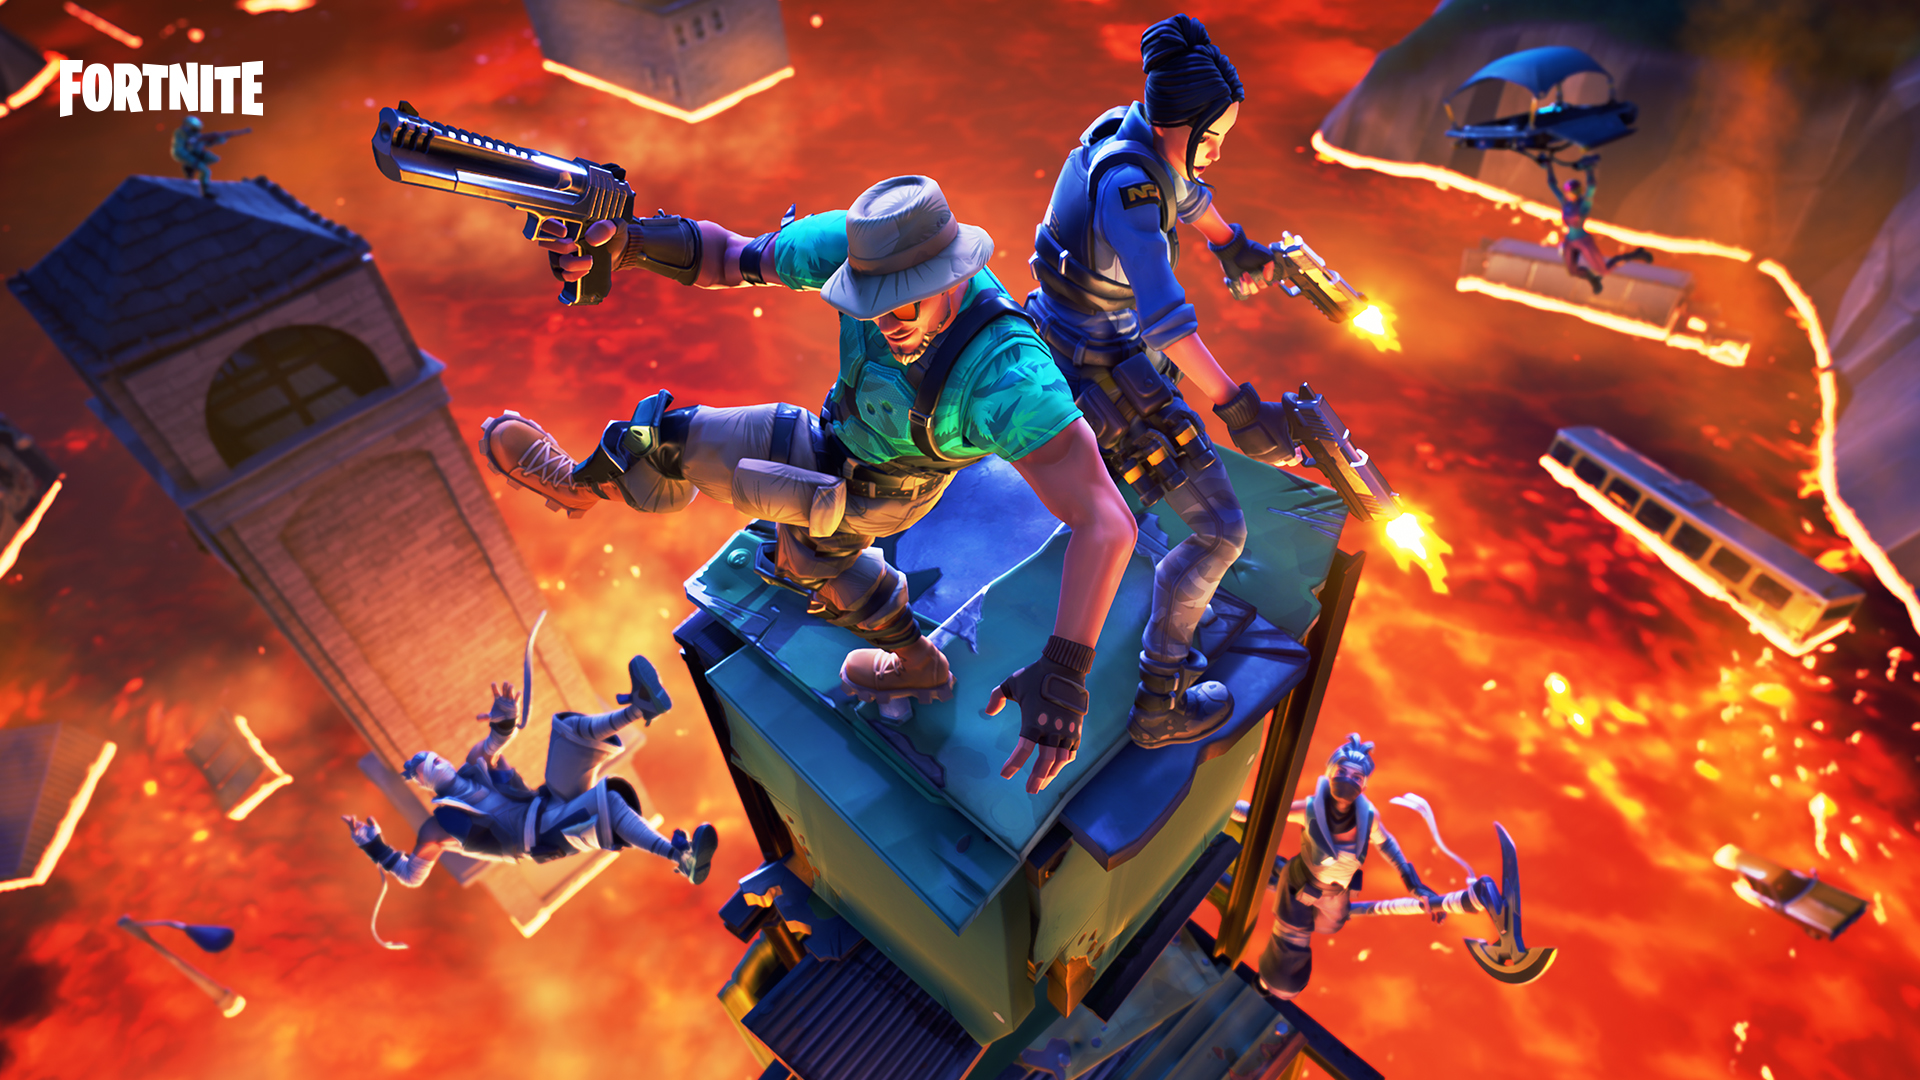 Fortnite update 8 20 adds ranked Arena mode and a Floor is